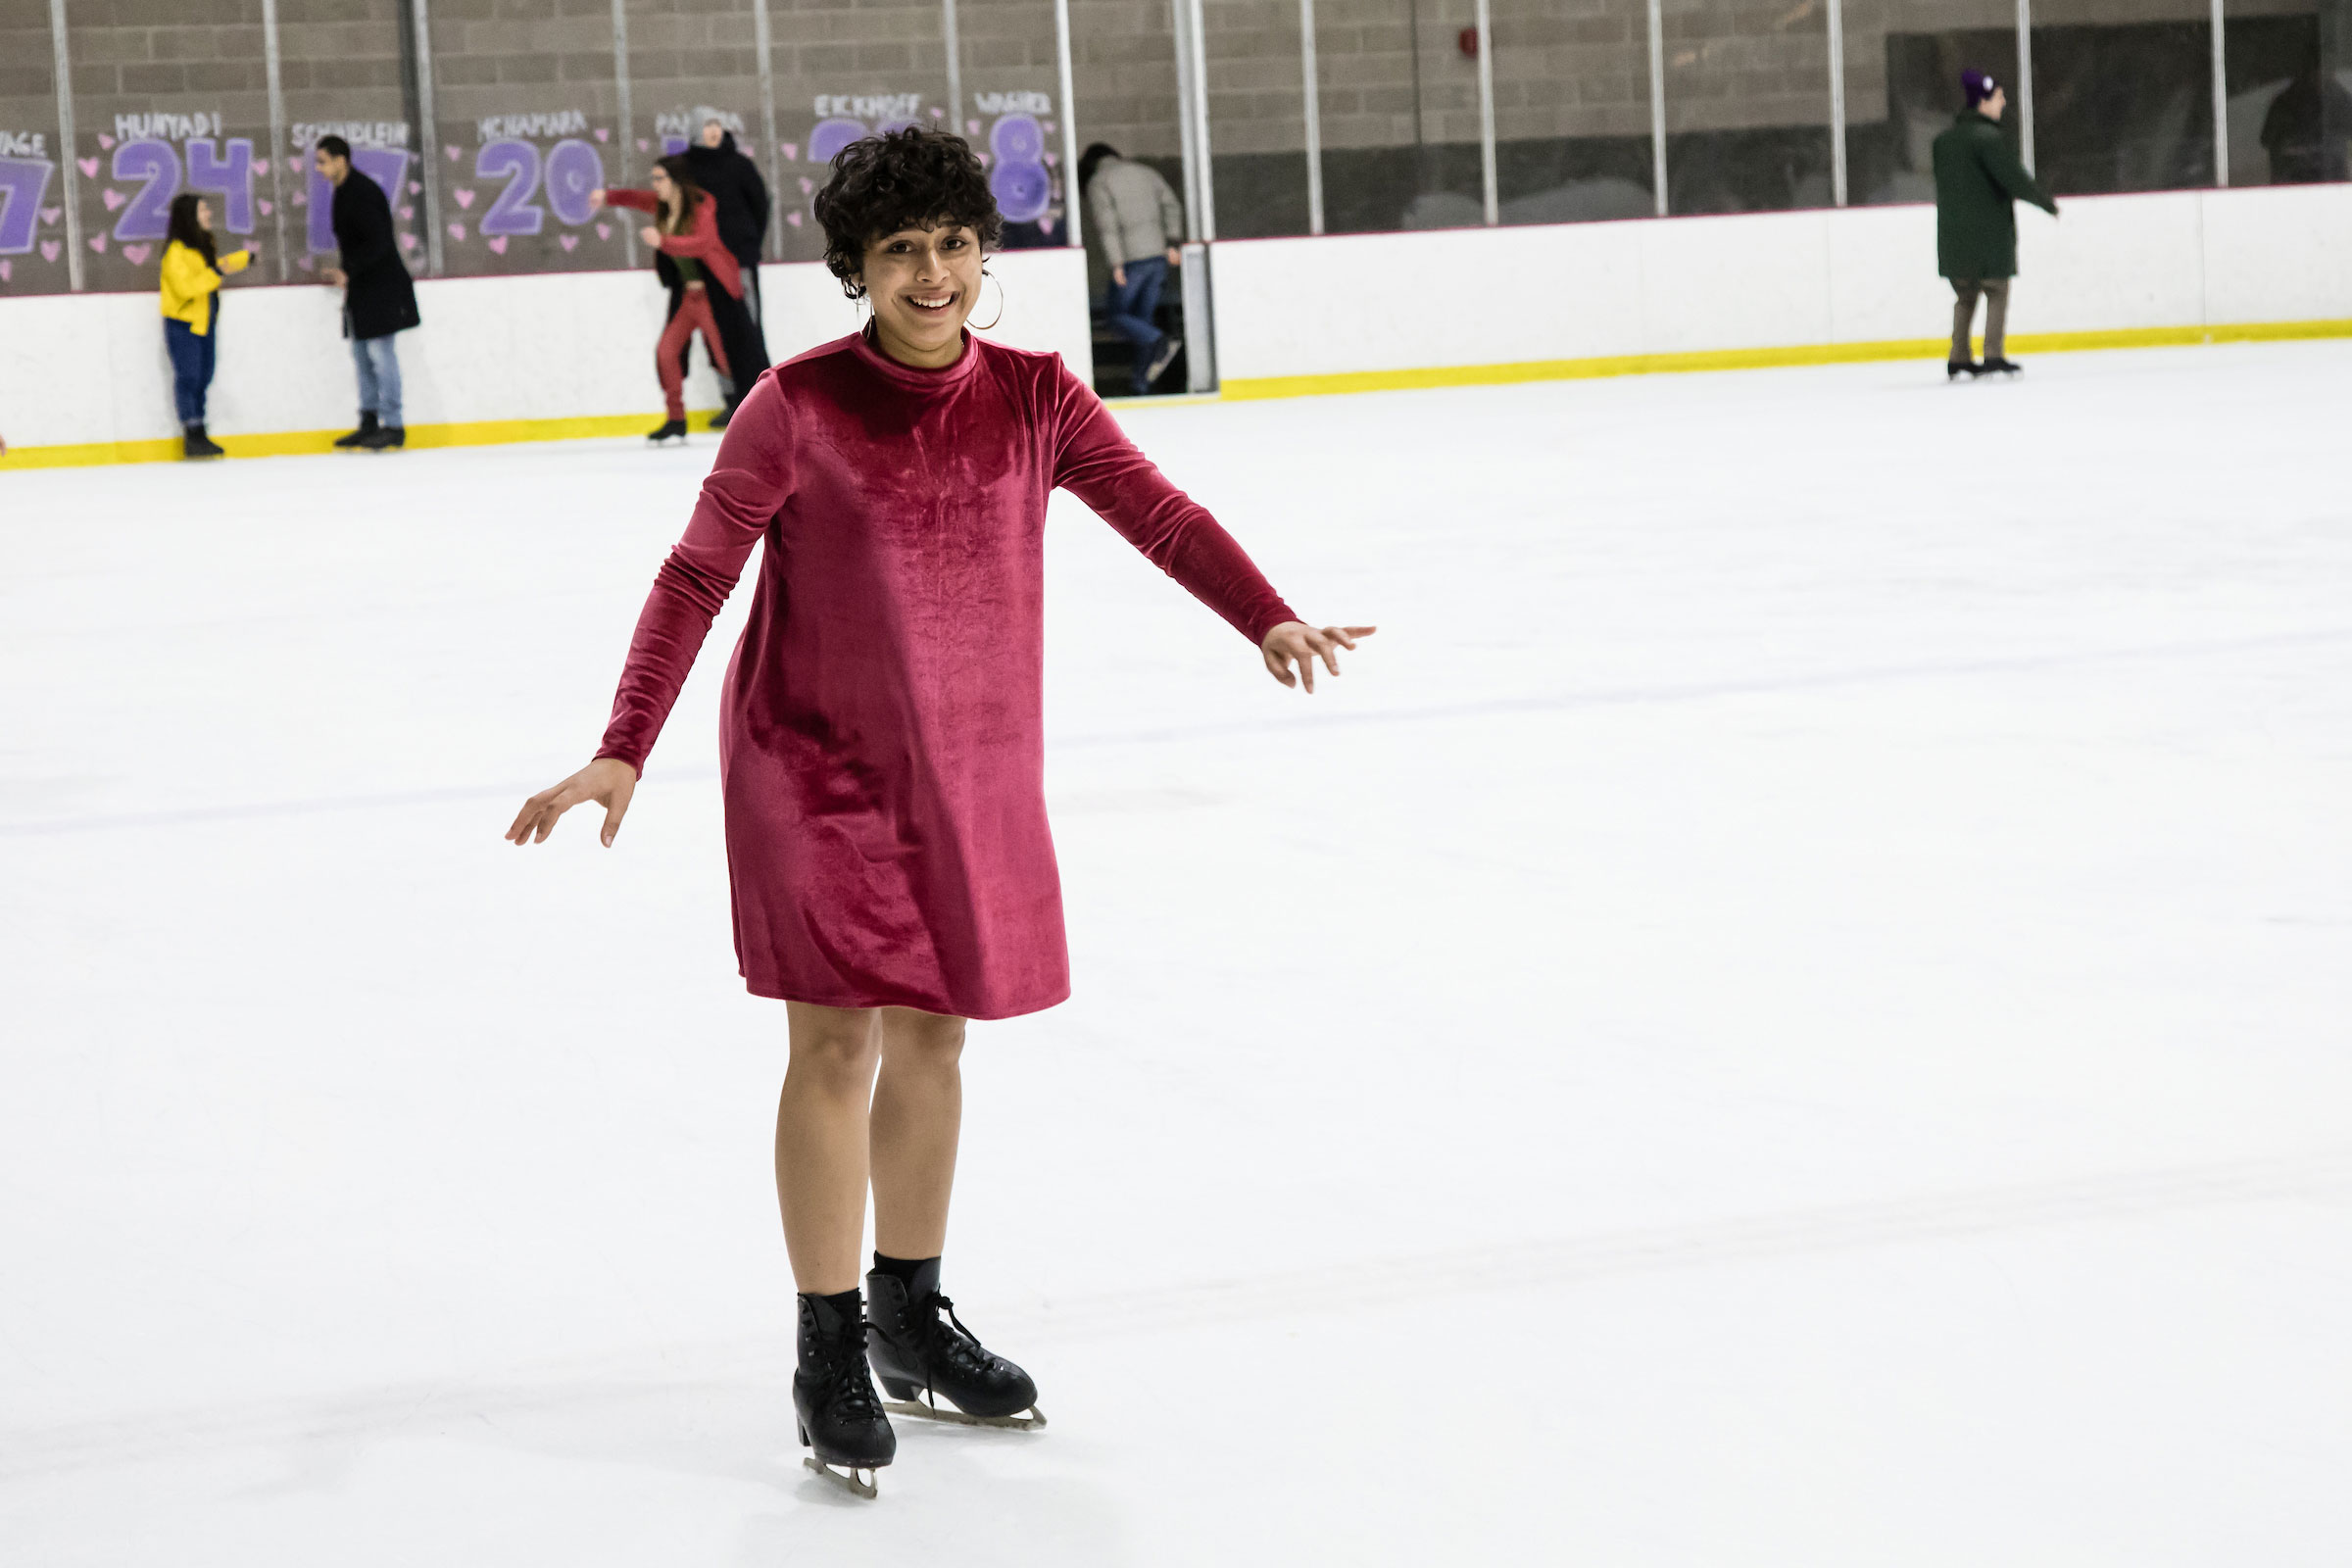 A young girl in a red dress ice skating